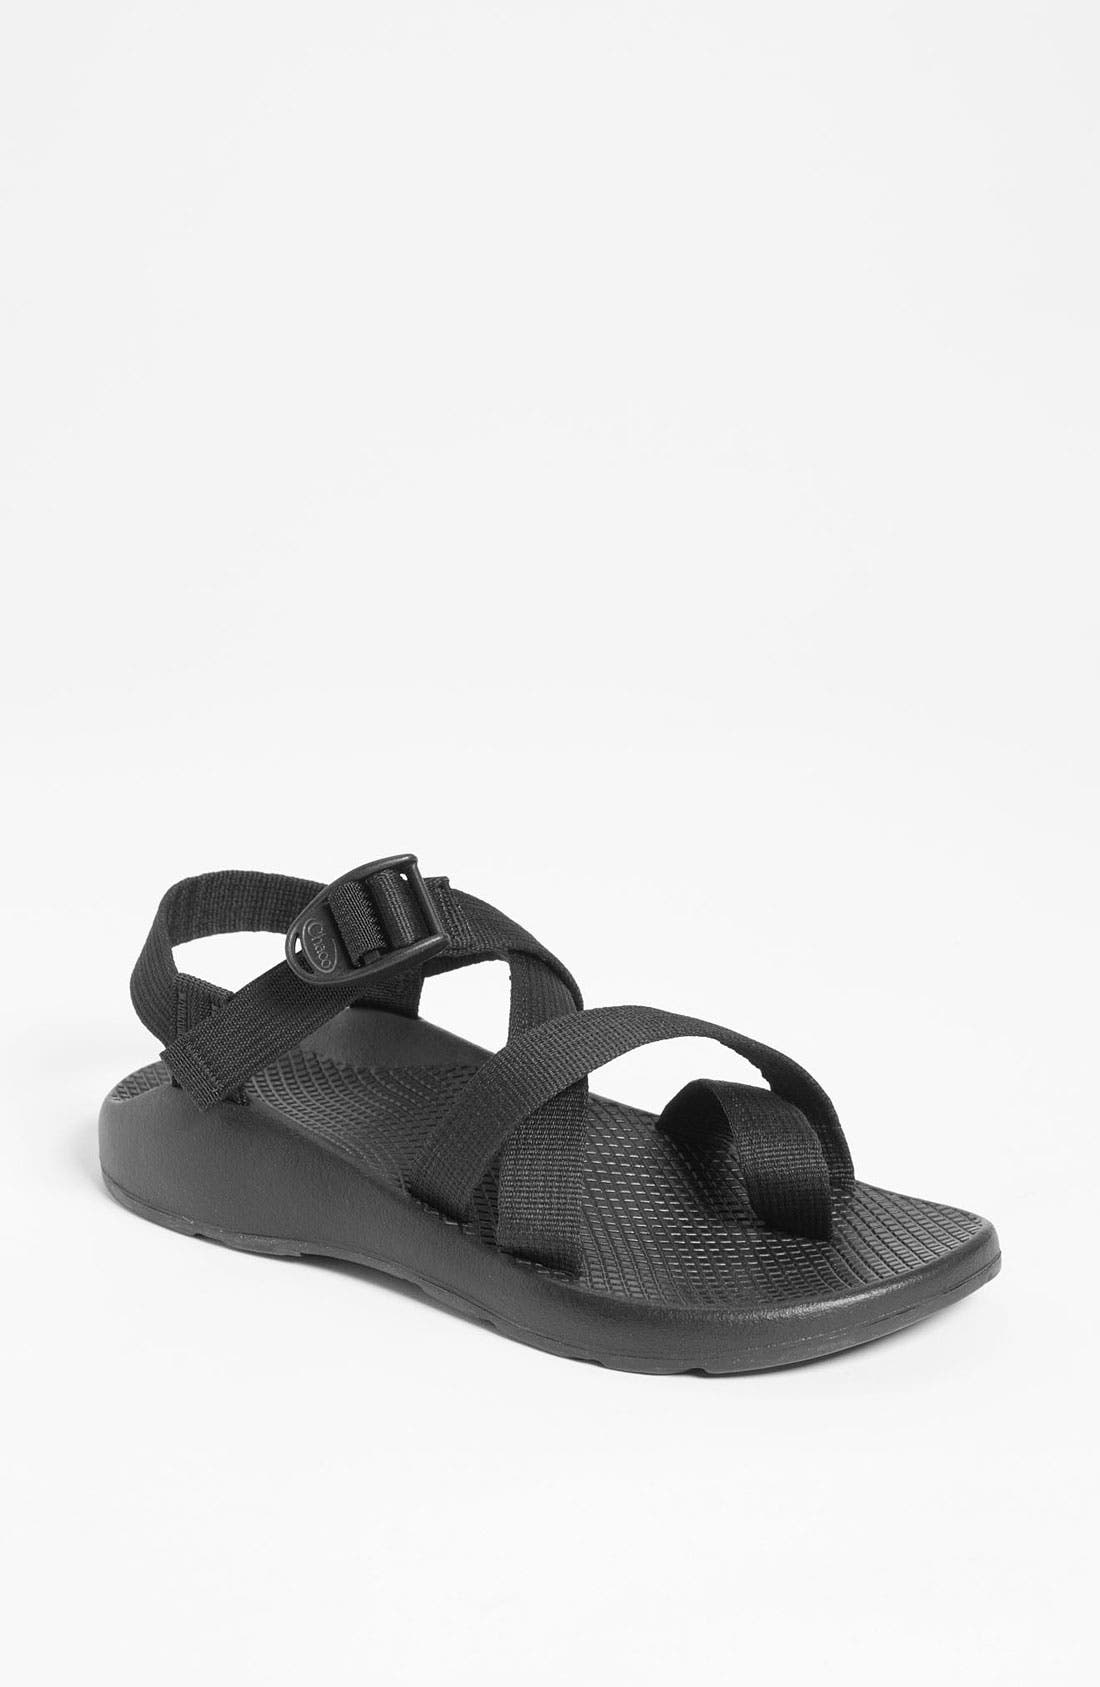 CHACO 'Z2 Yampa' Sandal, Main, color, 001